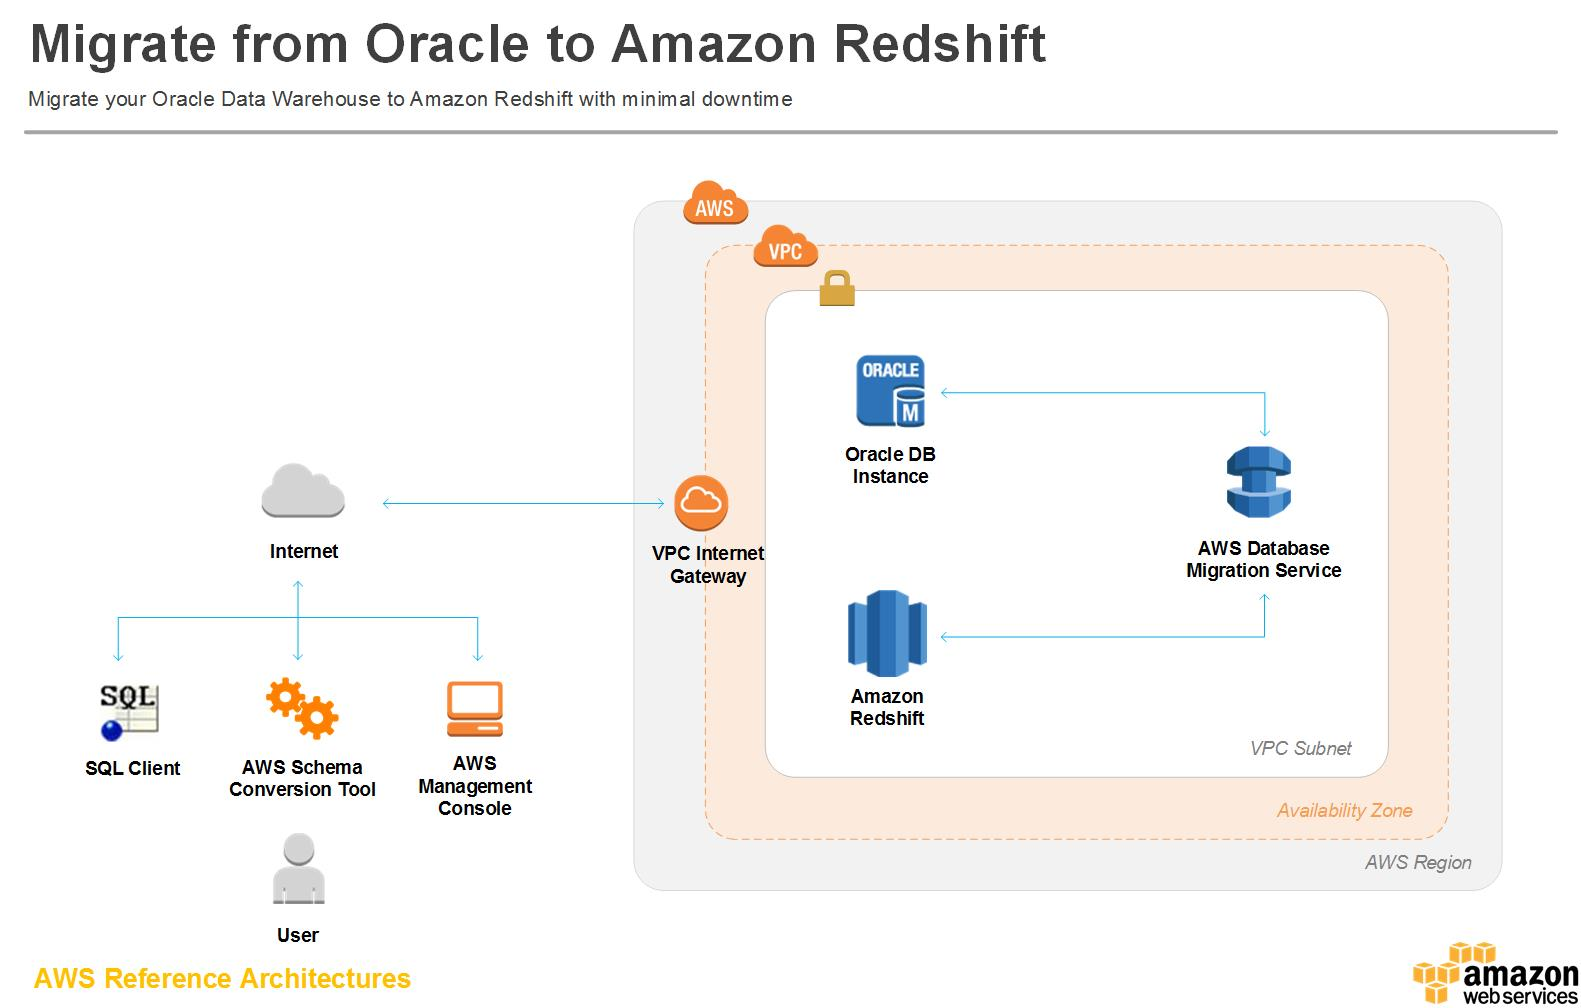 How to migrate from Oracle to Amazon Redshift - Amazon Web